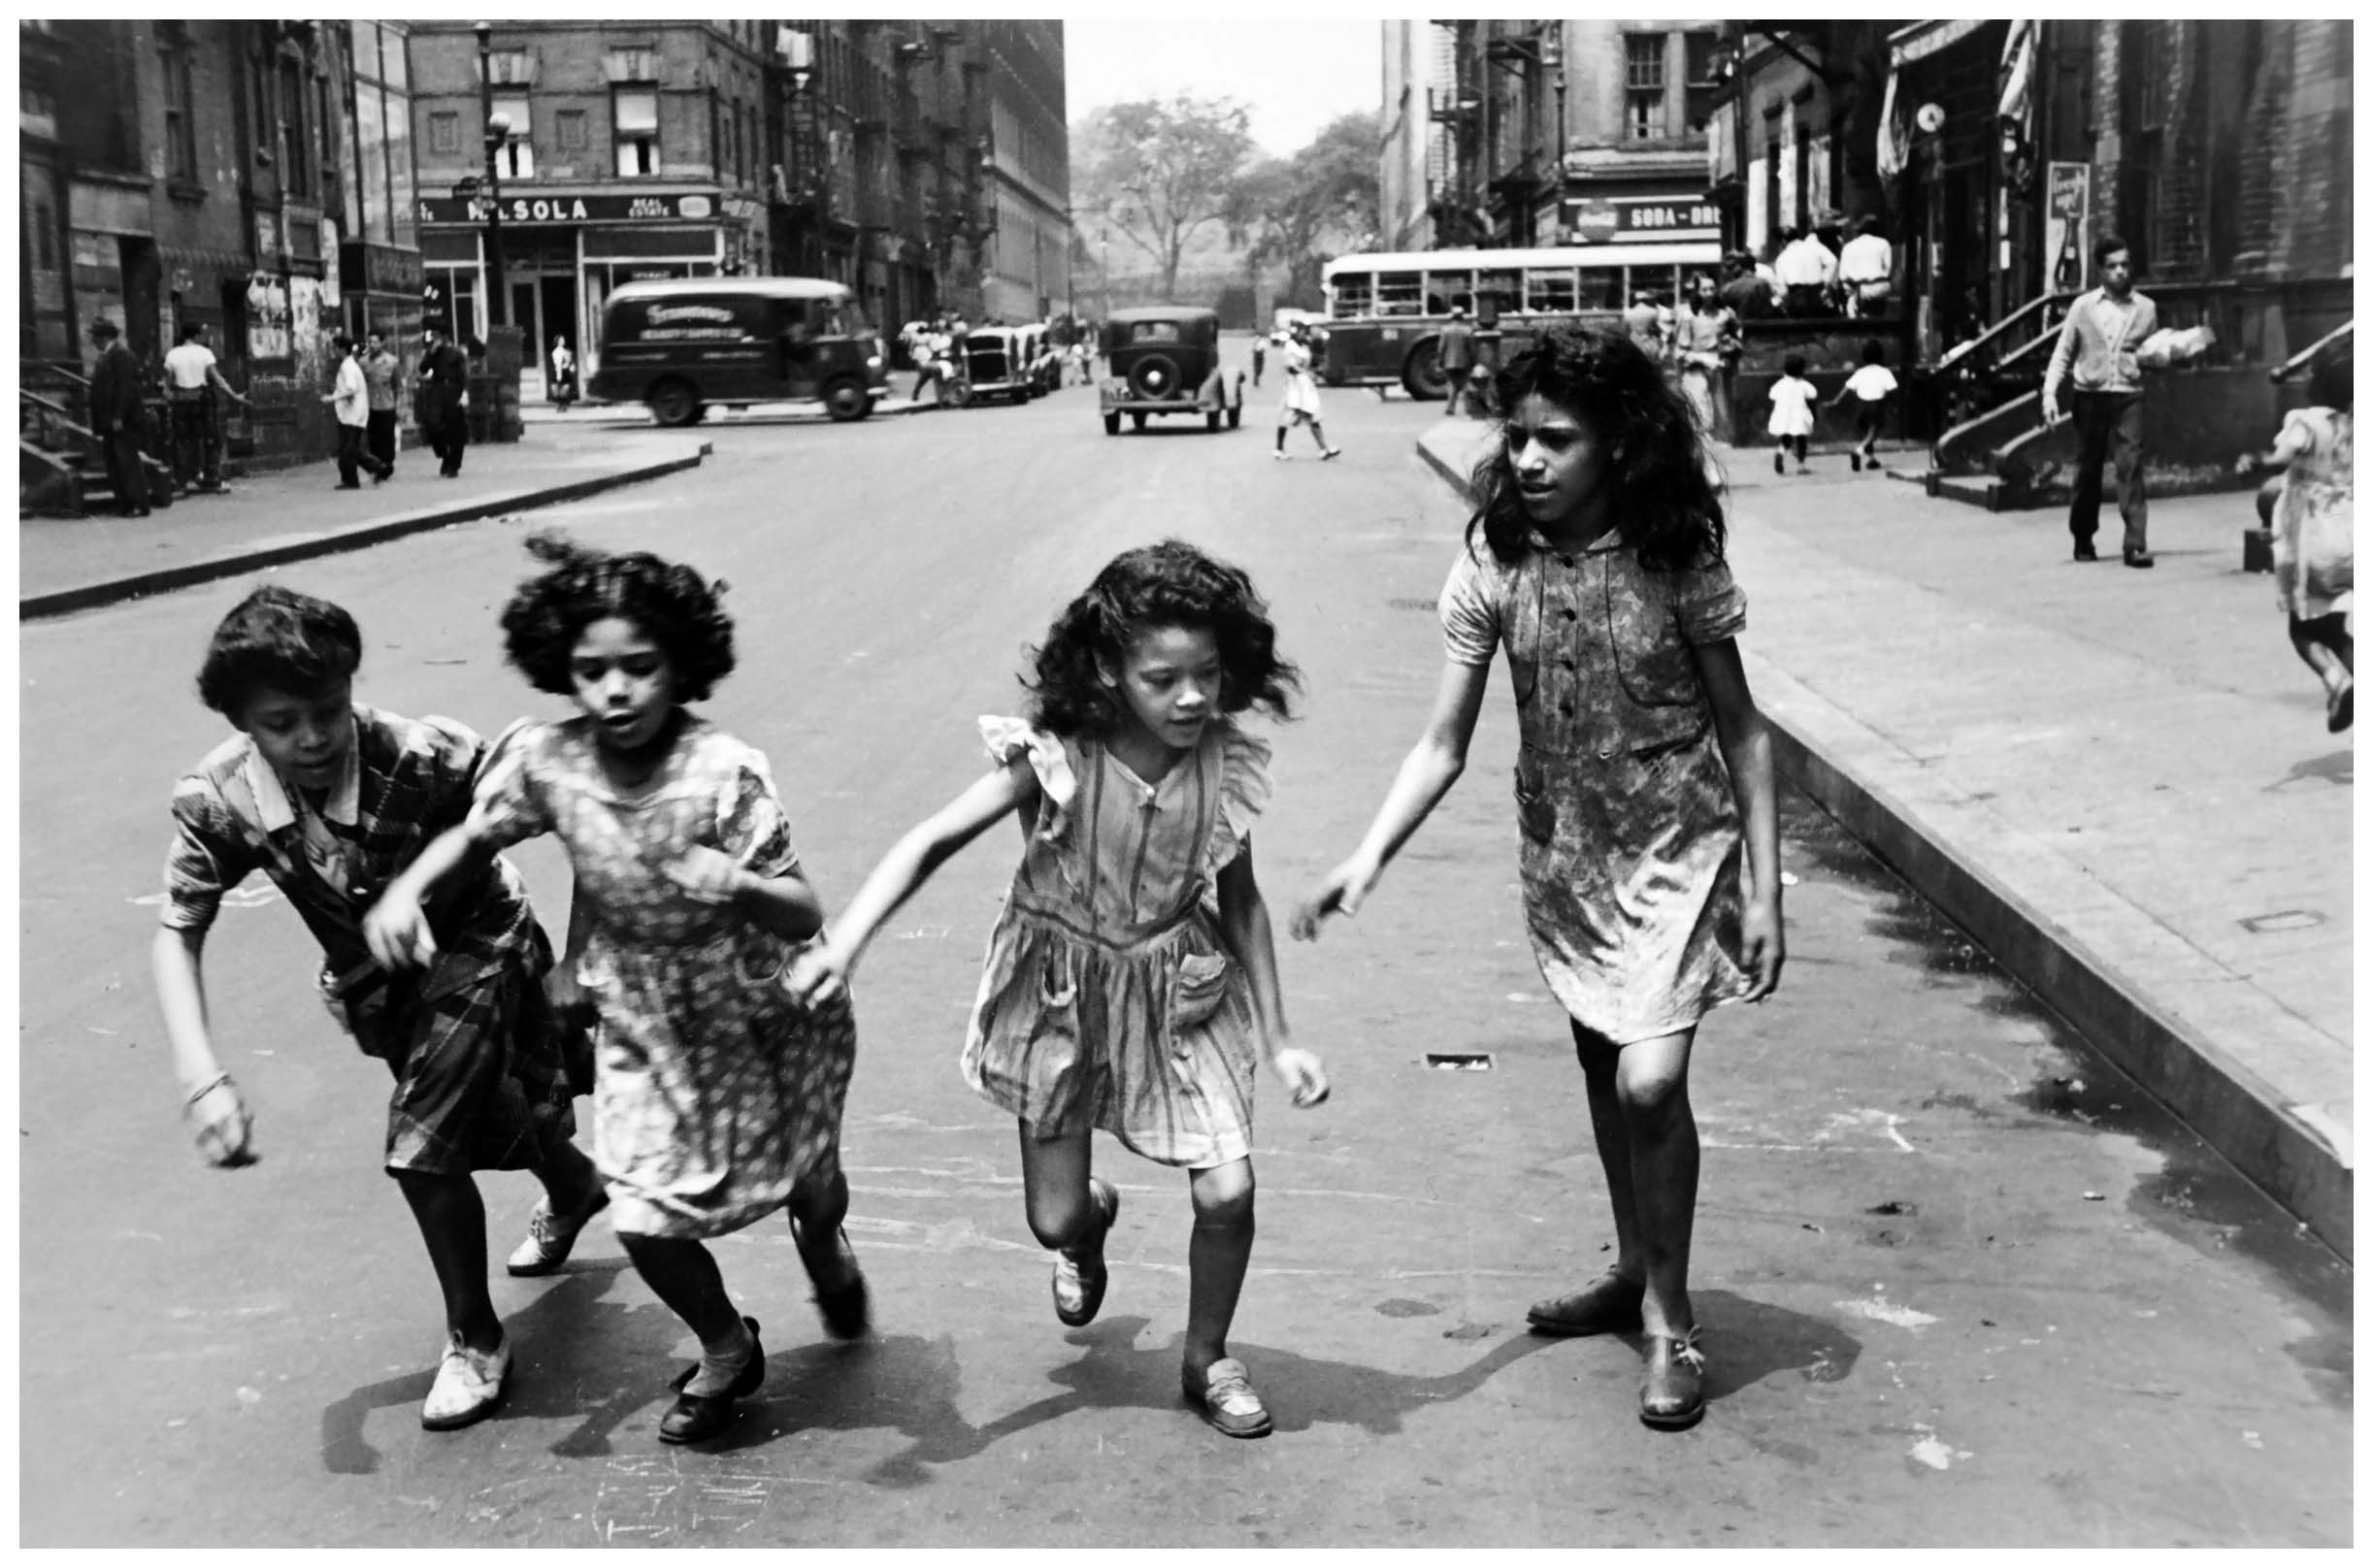 Four girls running in the street